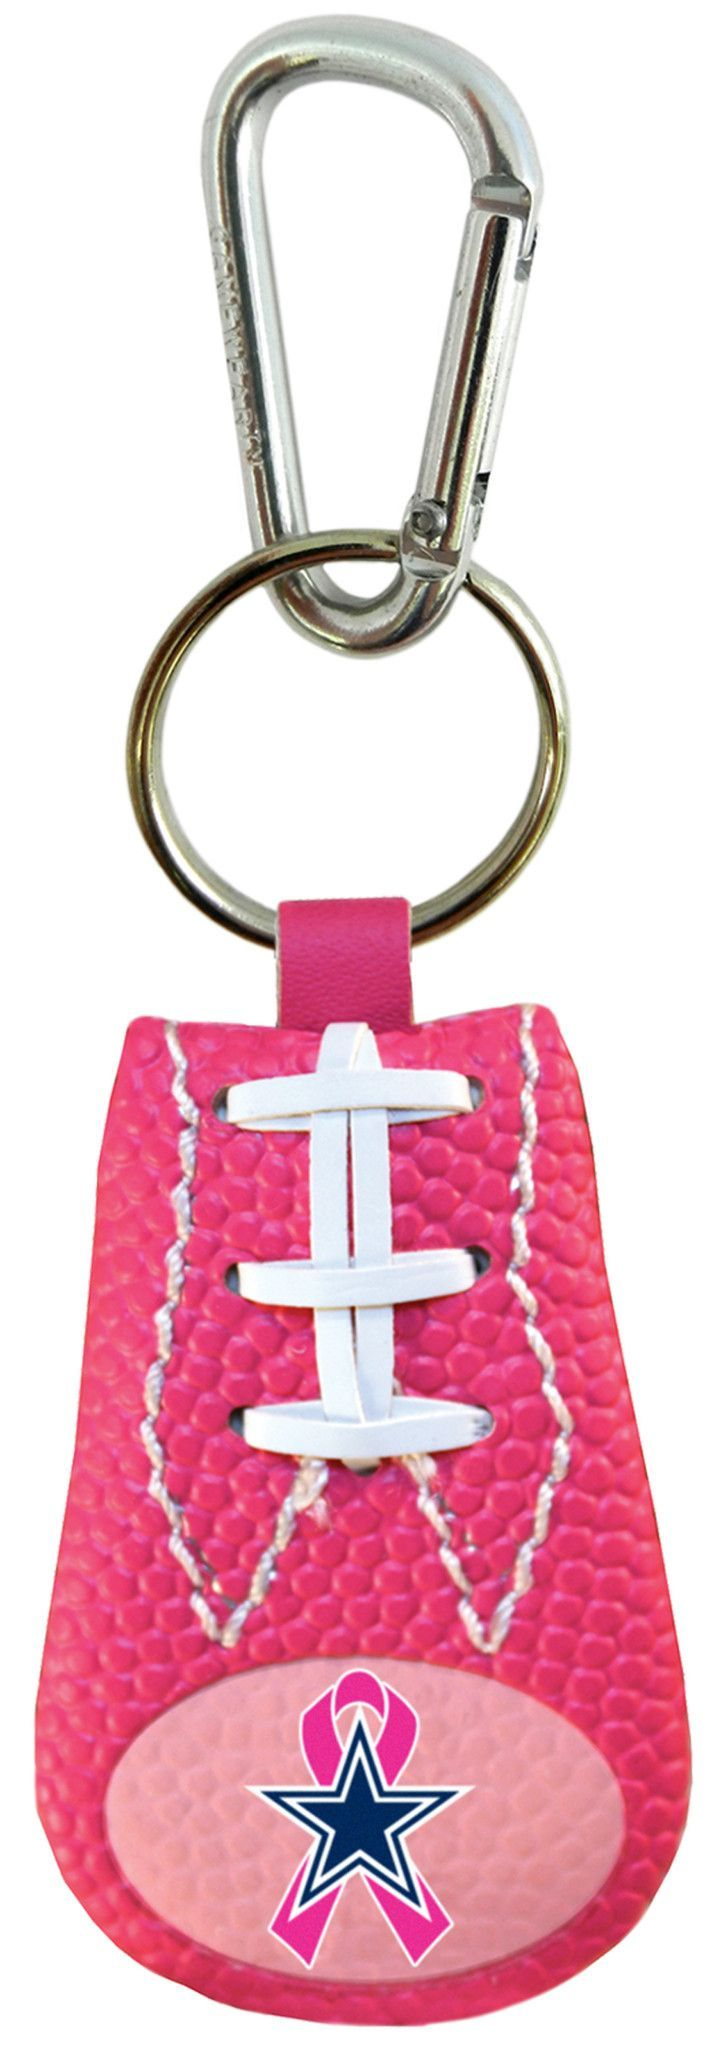 2bb36b392 ... Jersey Dallas Cowboys Breast Cancer Awareness Ribbon Pink Football  Keychain Dallas Football Fanatic! Pinterest Pink football ... Womens Nike  Cowboys 22 ...